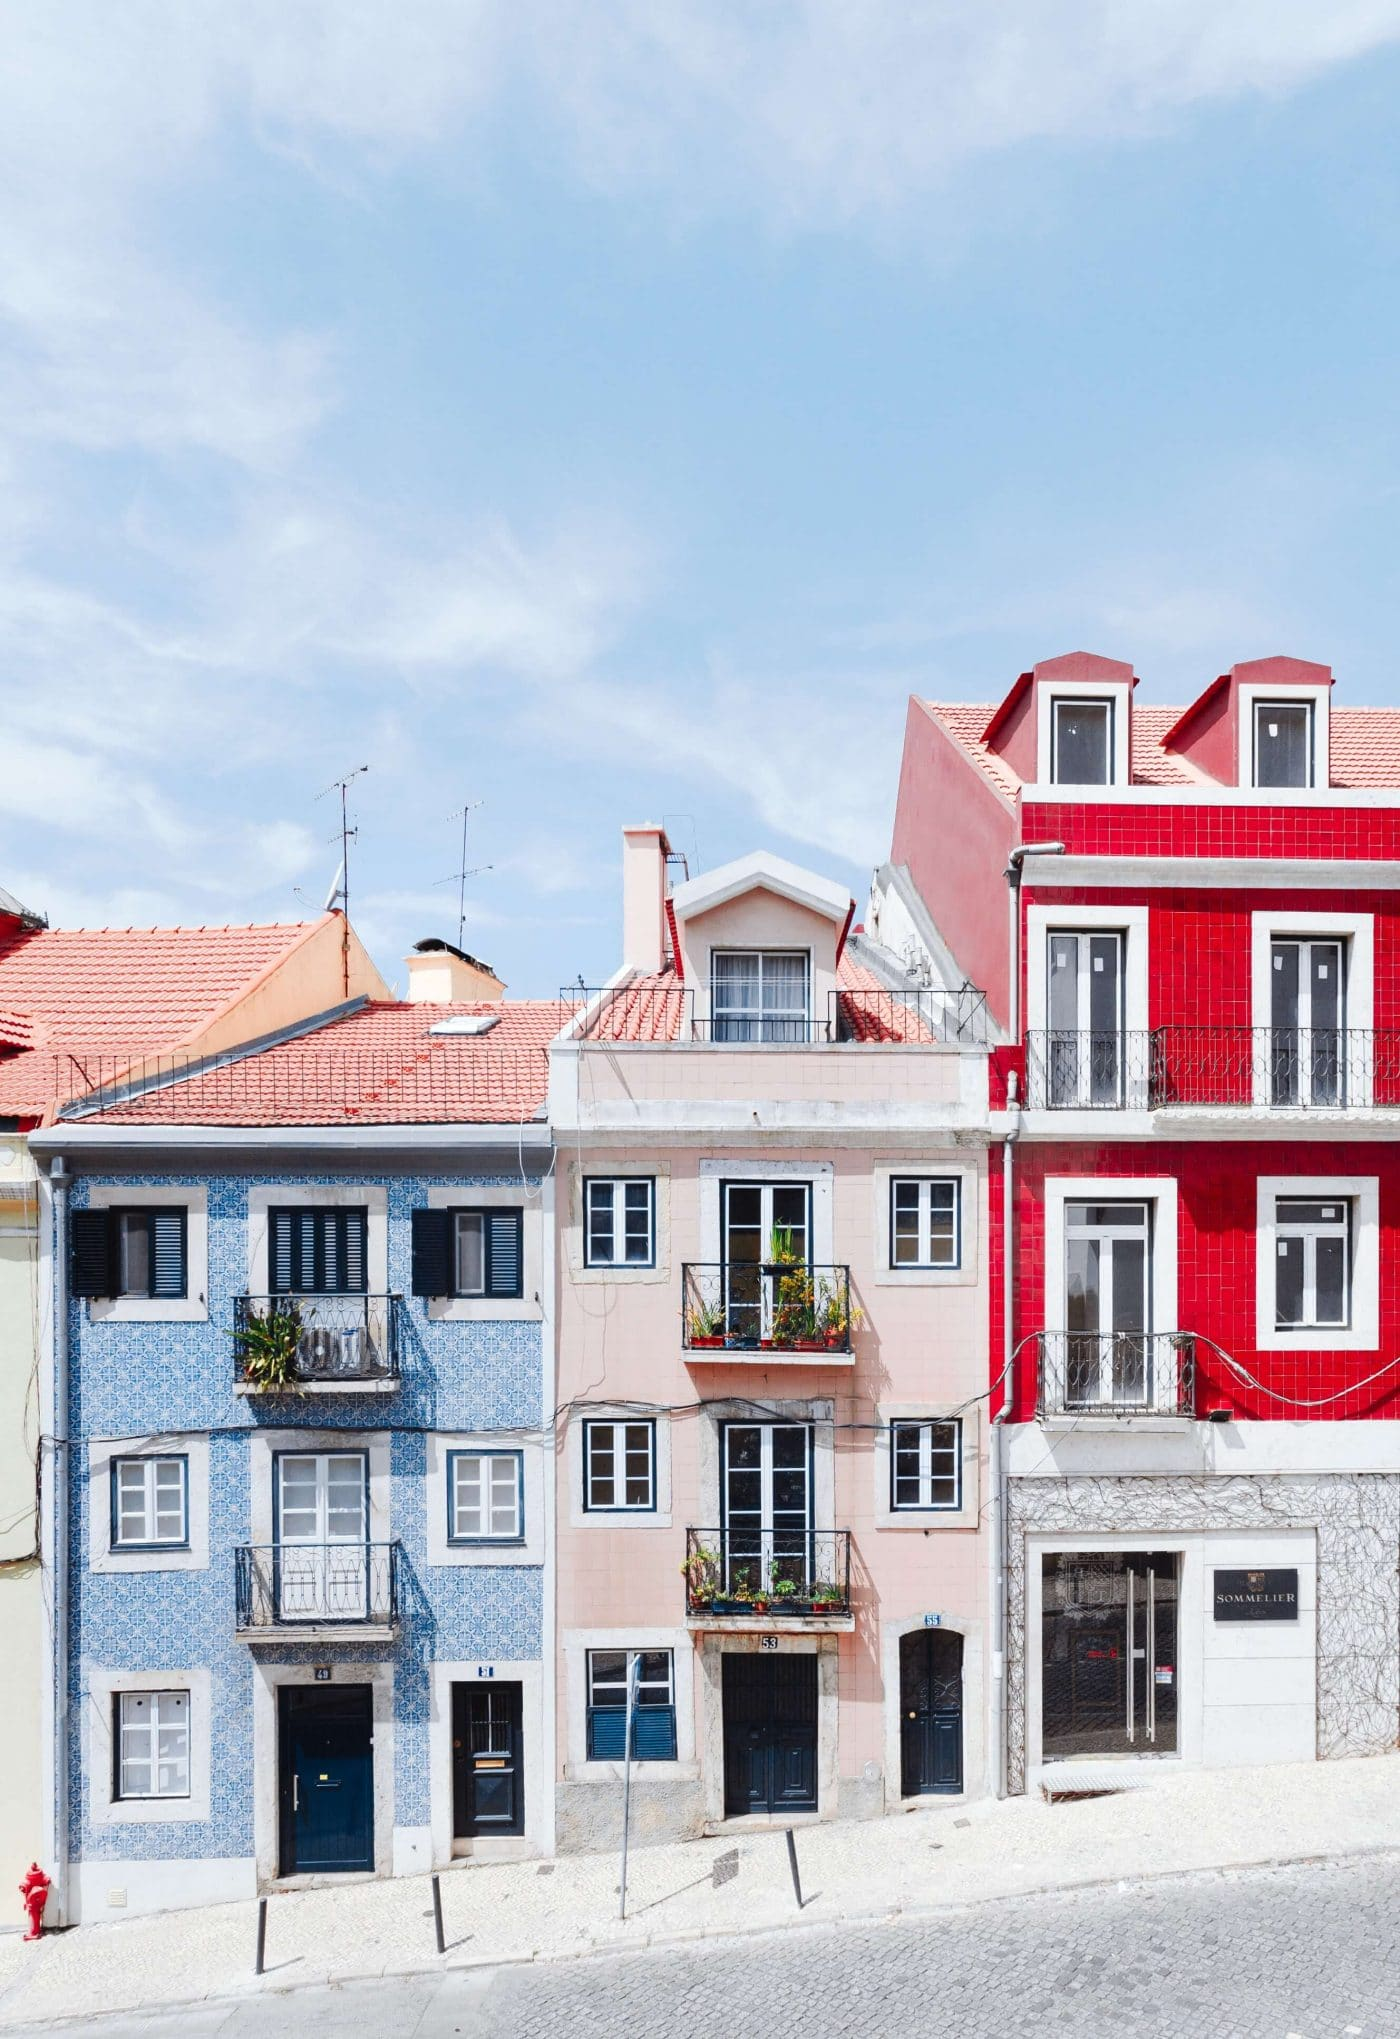 Postcard from Portugal: Row Houses in Lisbon